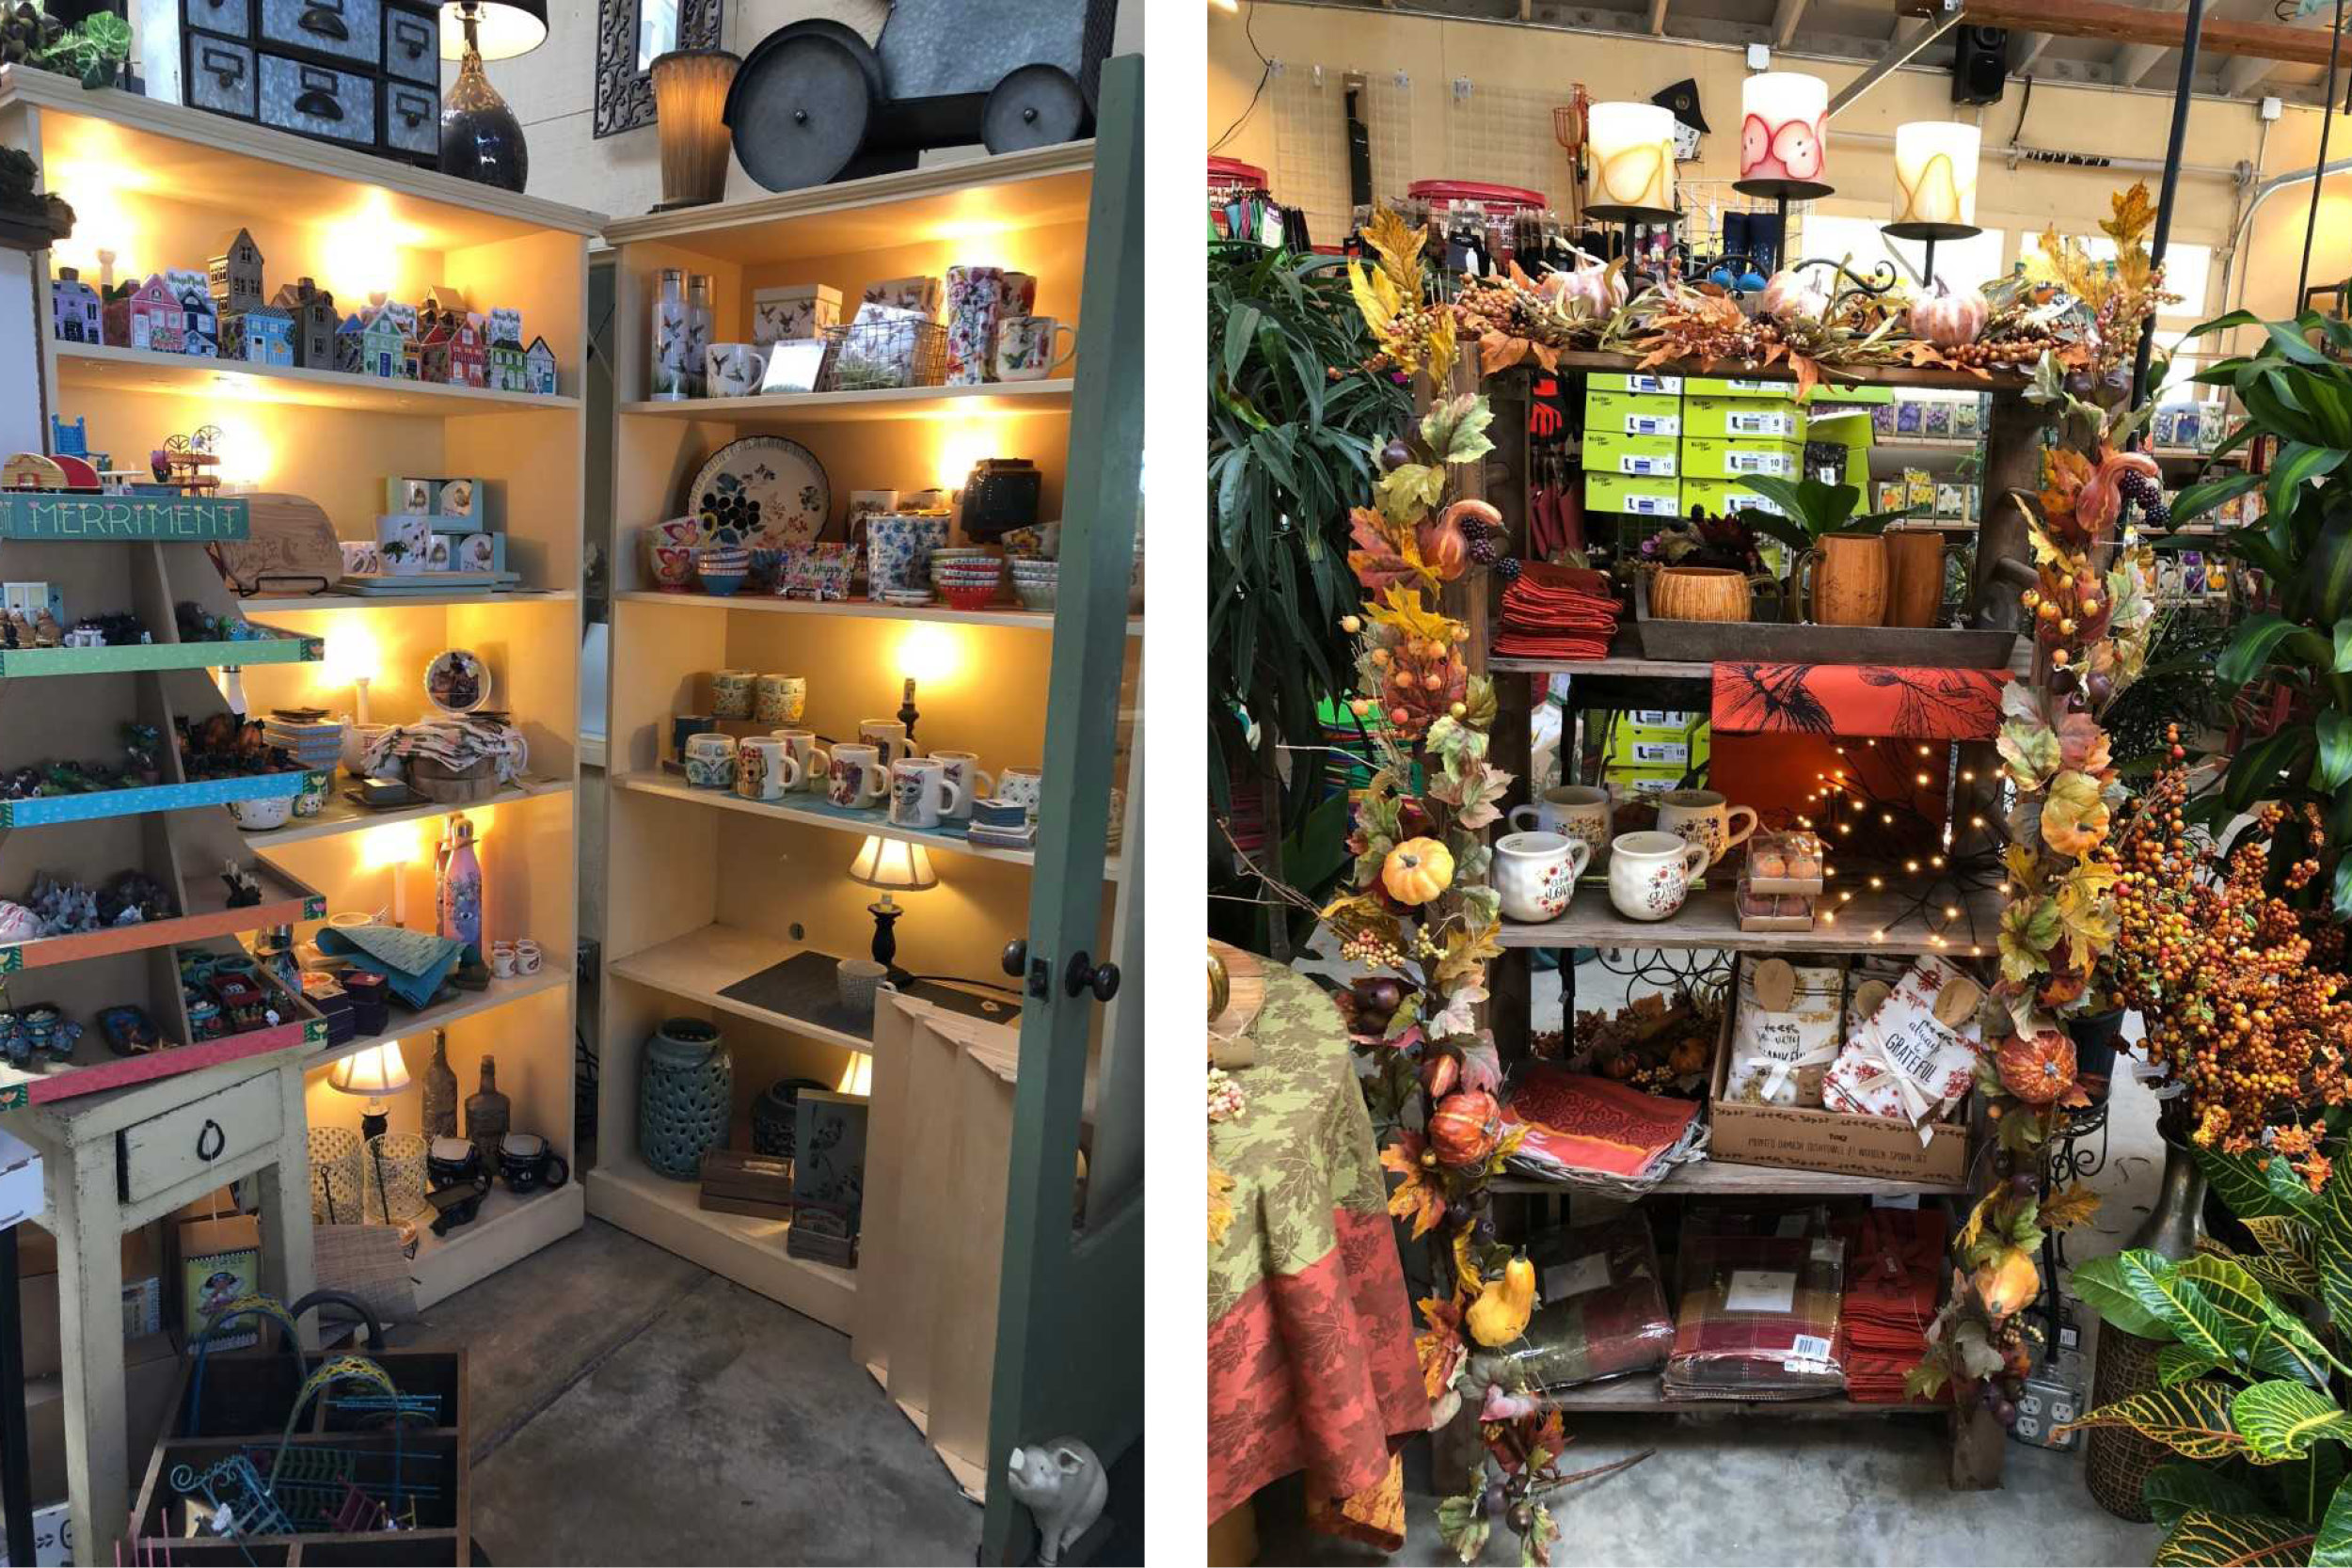 It's fun to browse the gift shop and explore seasonal offerings.